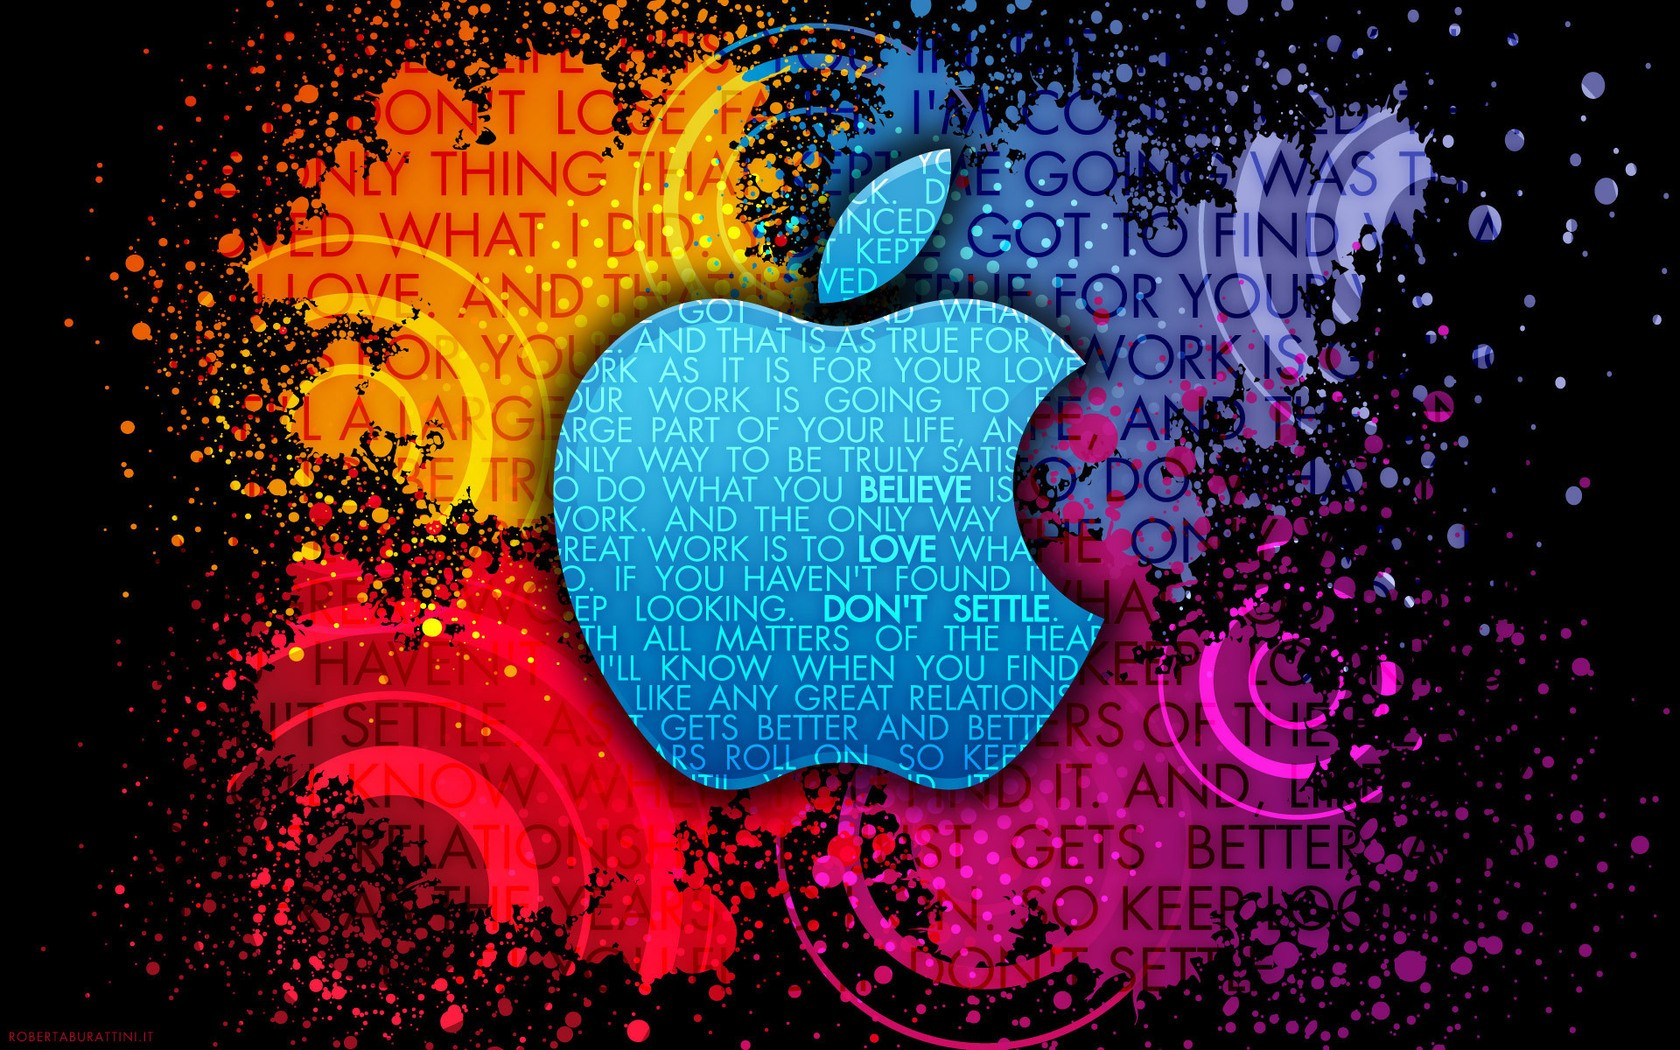 Apple Abstracto - 1680x1050